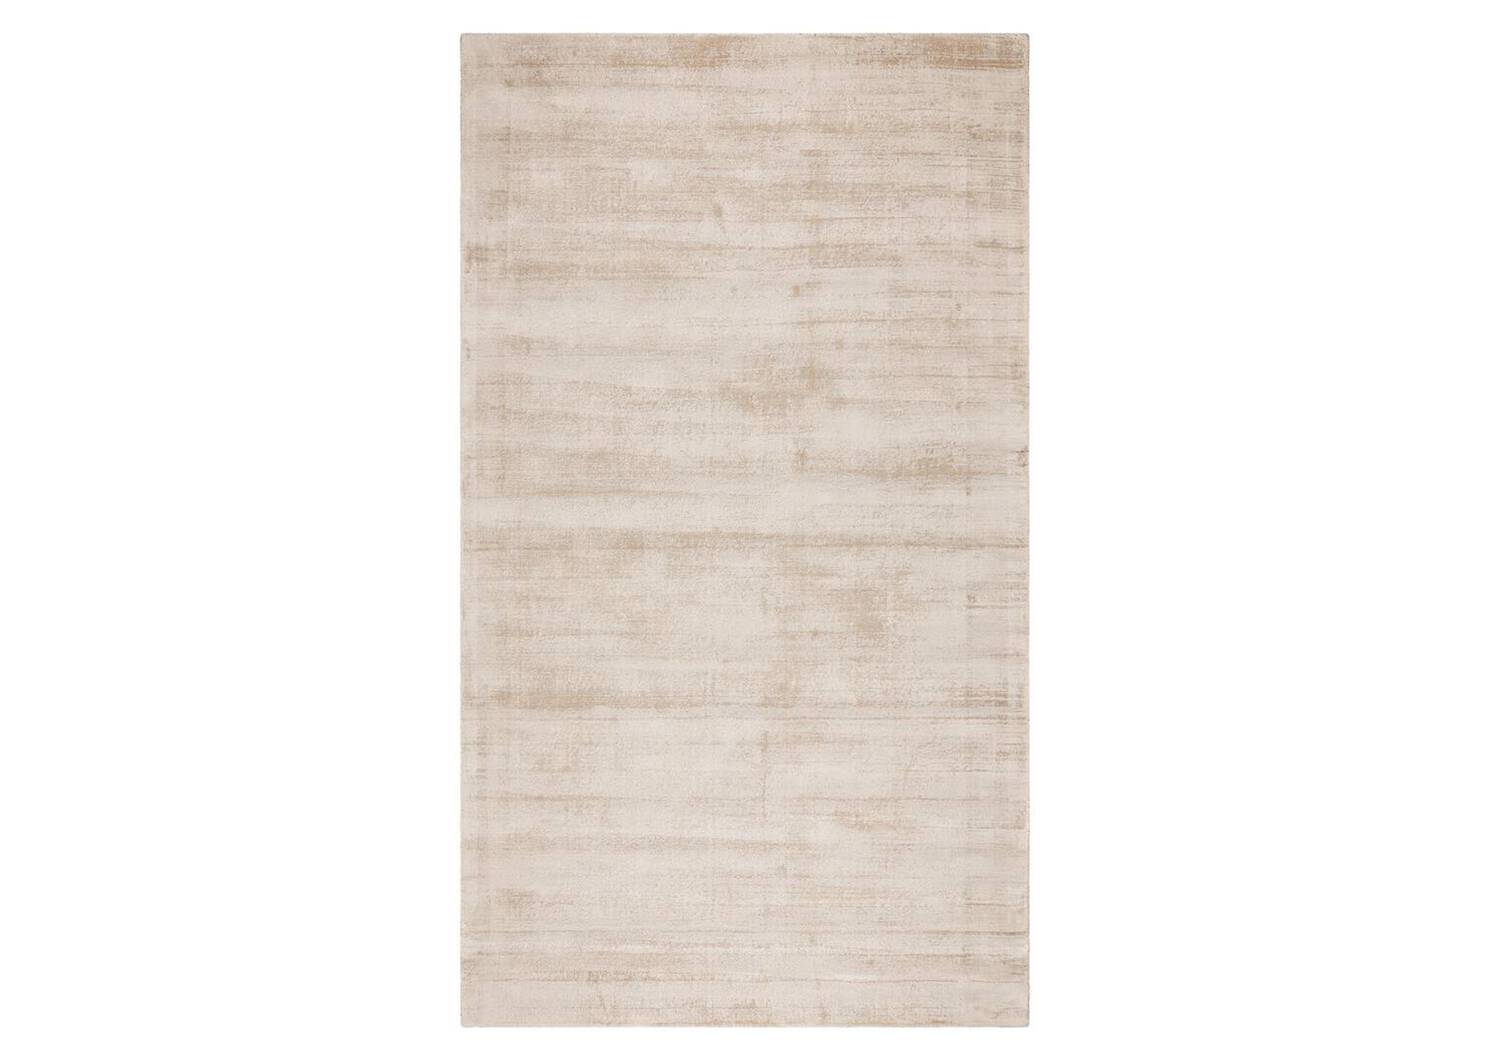 Tapis Antique 108x144 sable